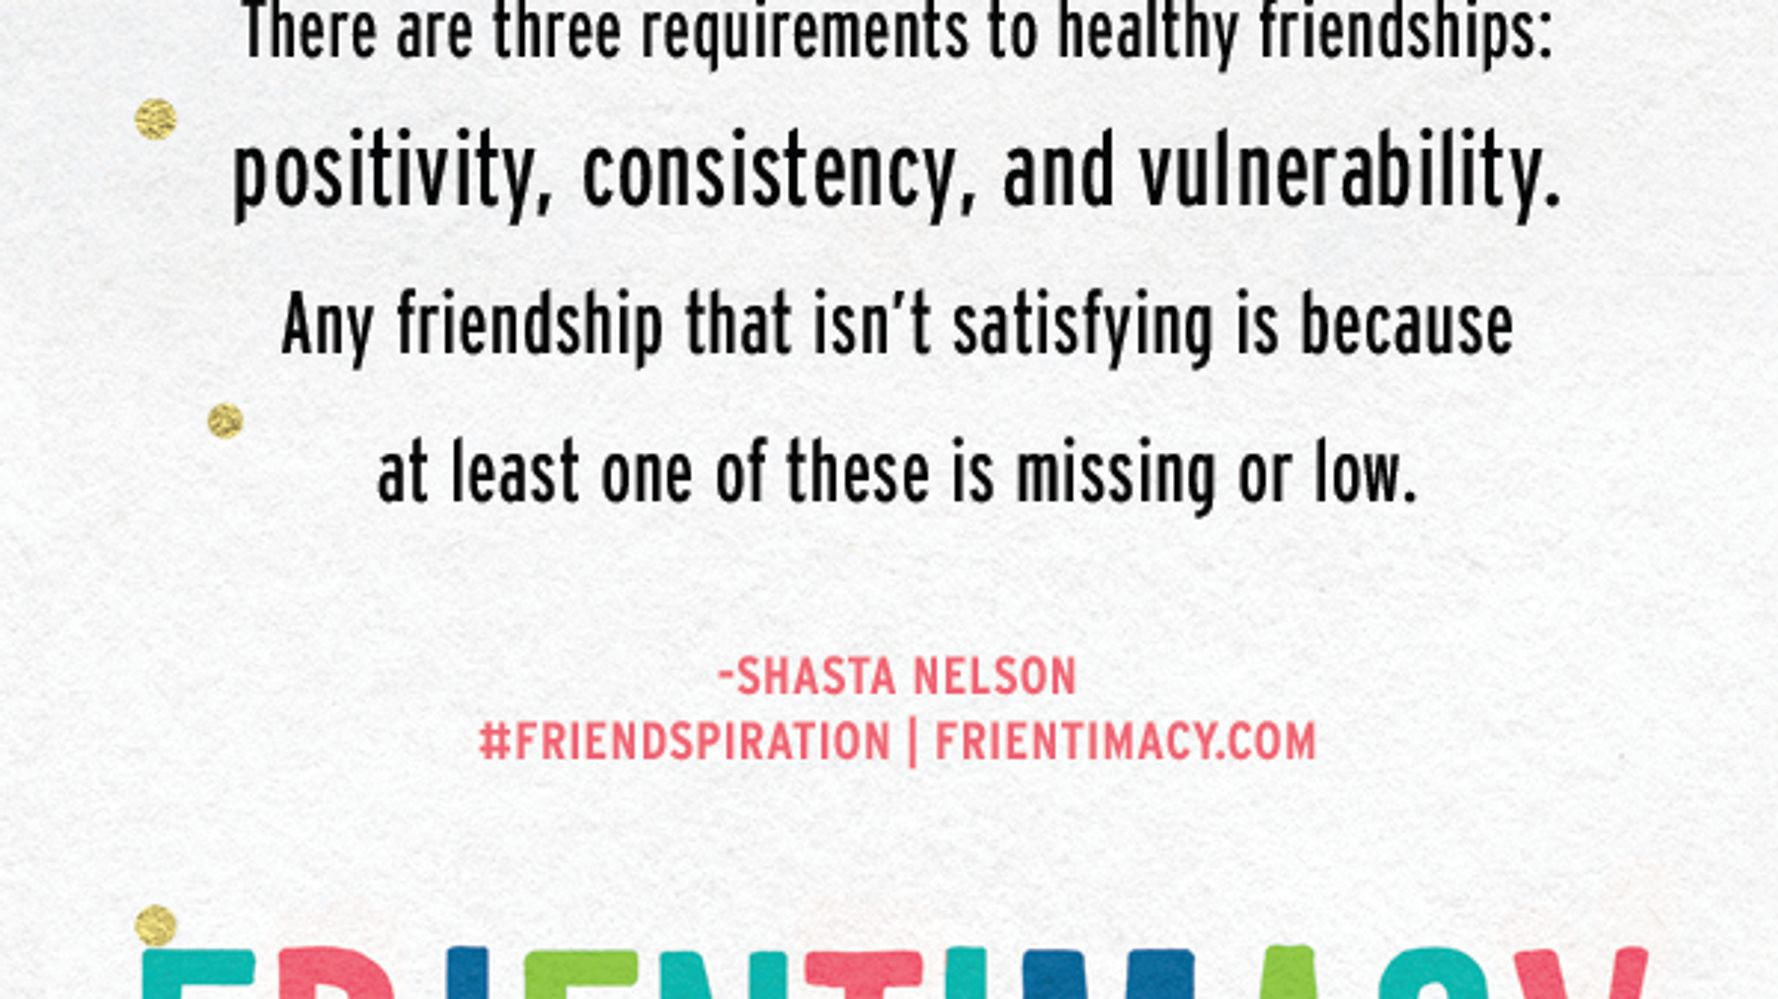 The 3 Requirements of All Healthy Friendships